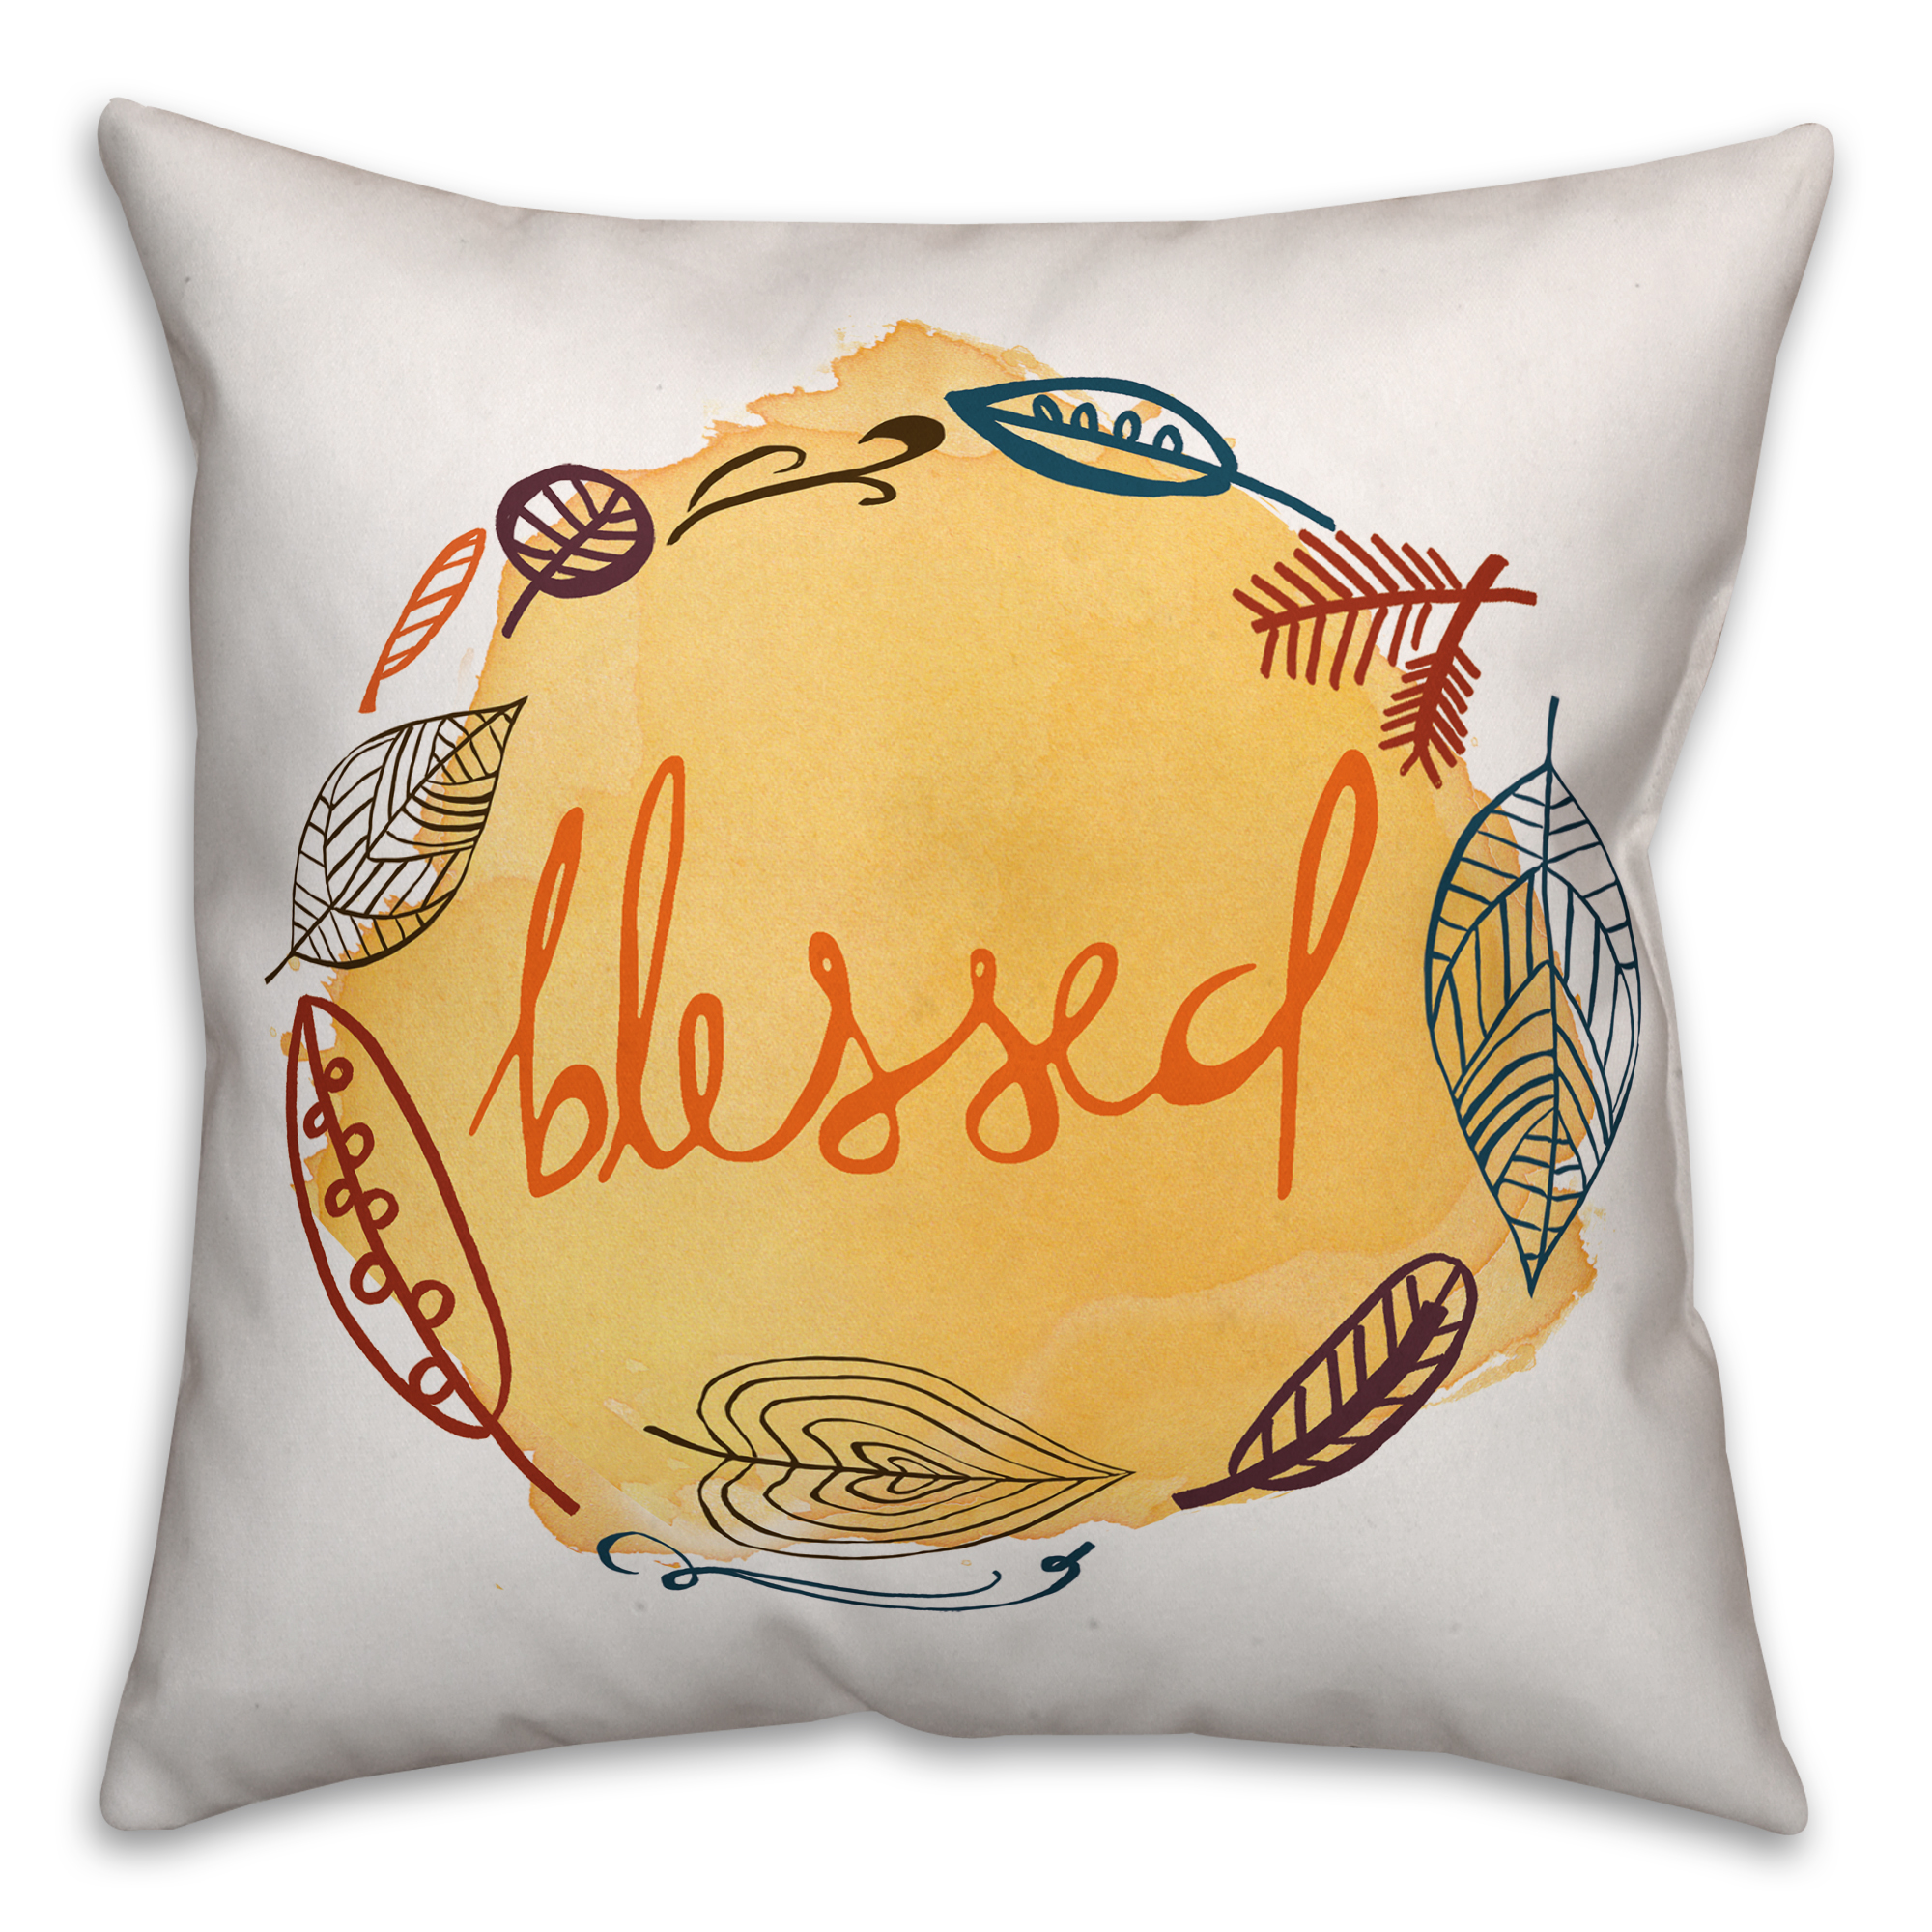 Harvest Blessed 18x18 Spun Poly Pillow